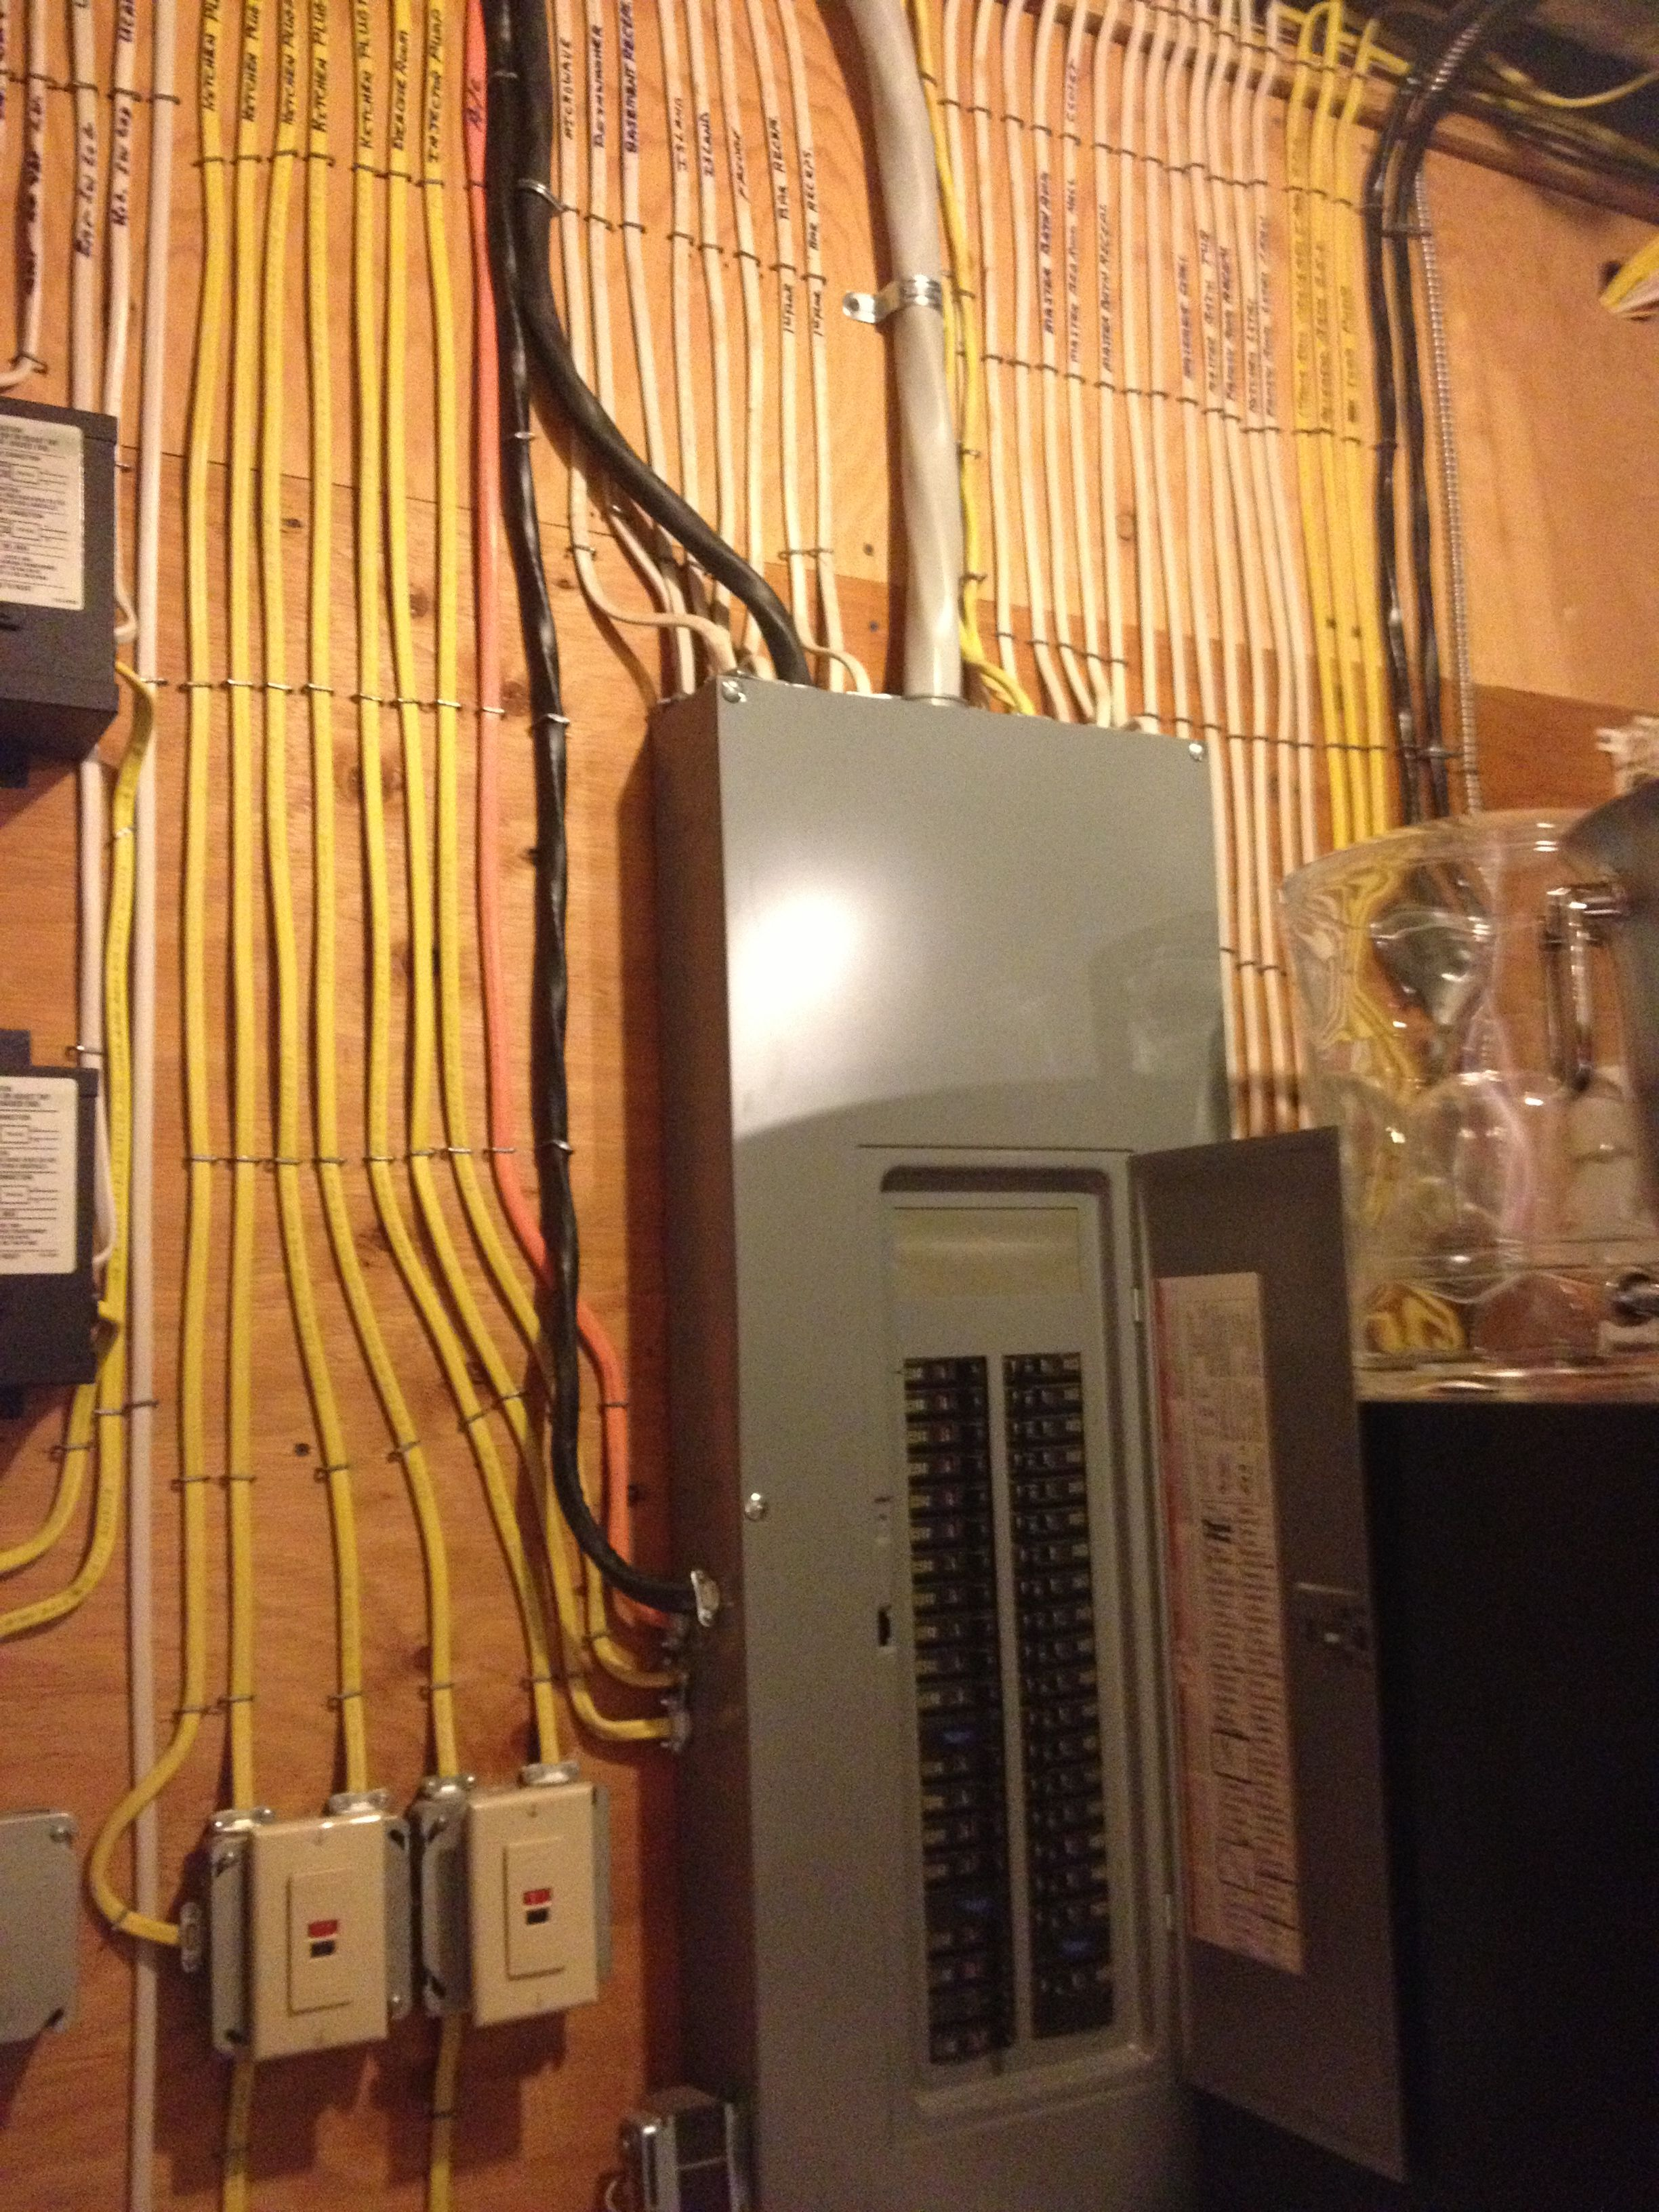 small resolution of i ve never seen an ocd electrician like this before but i love it realestate springlakehomes